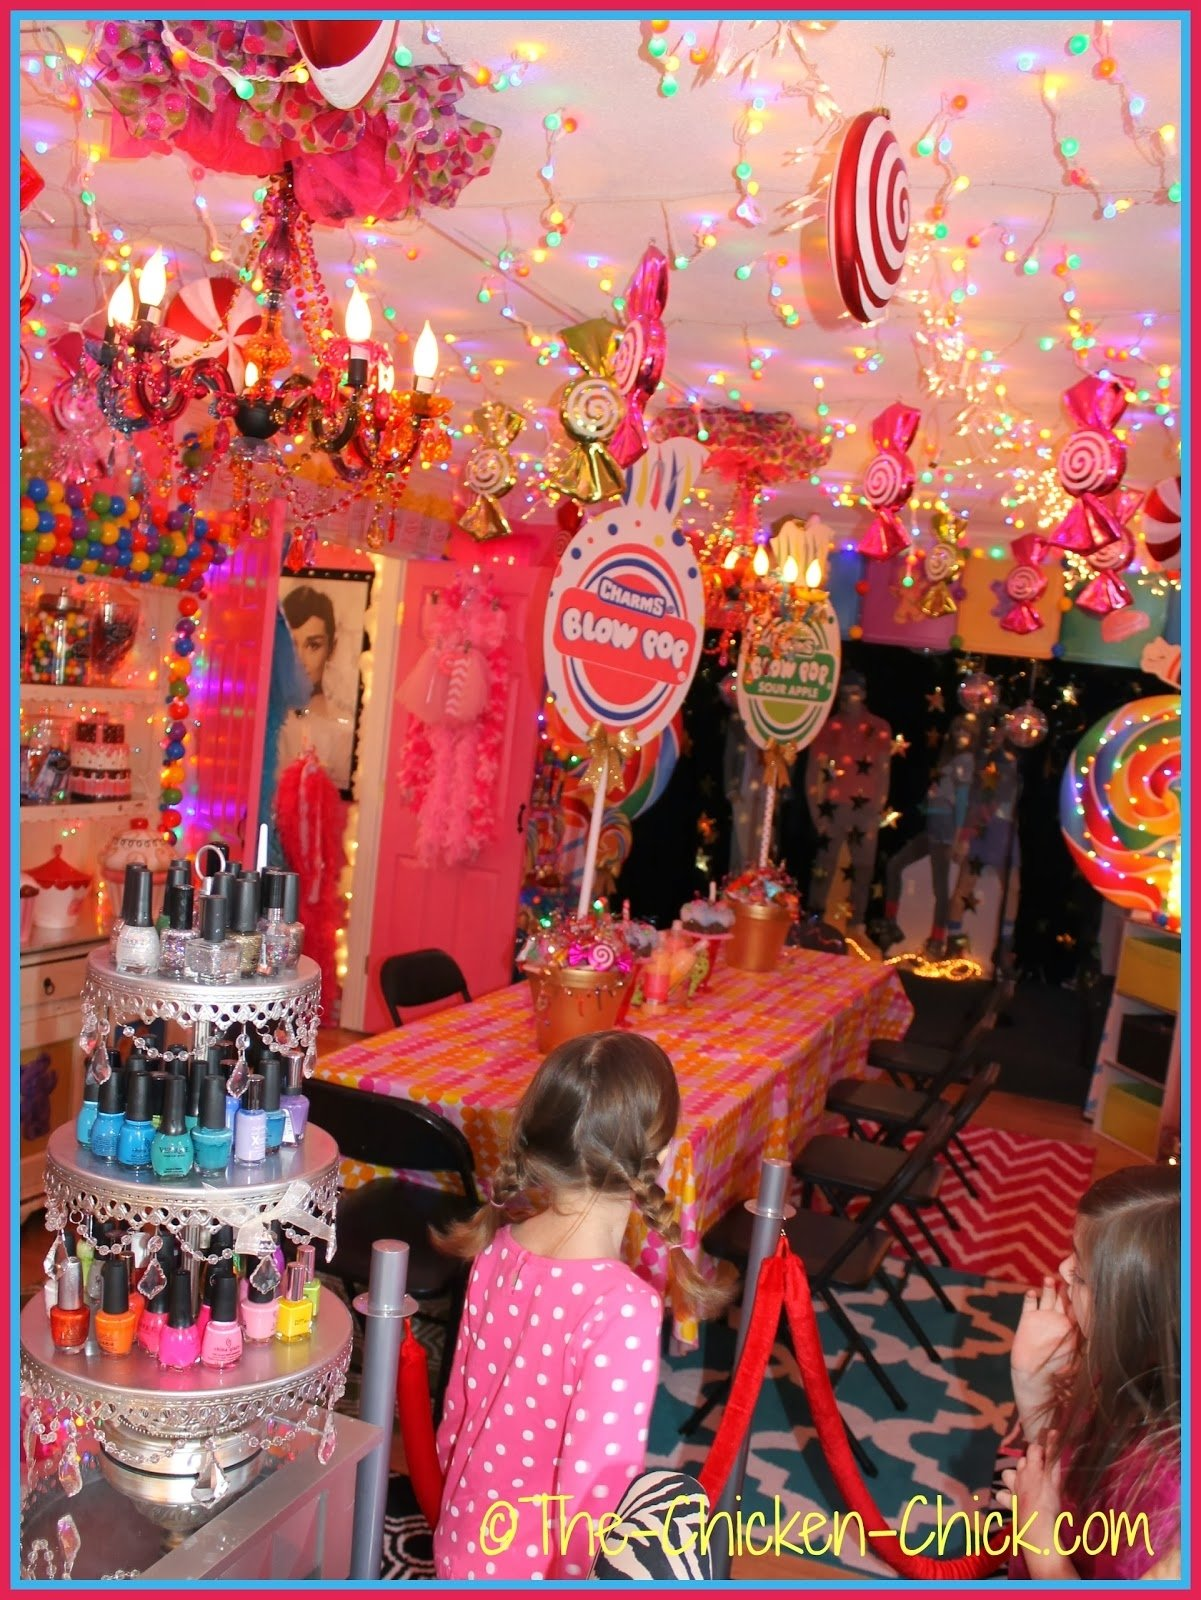 10 Trendy 7 Year Old Girl Birthday Party Ideas spa birthday party ideas for 7 year olds pool design ideas 34 2021